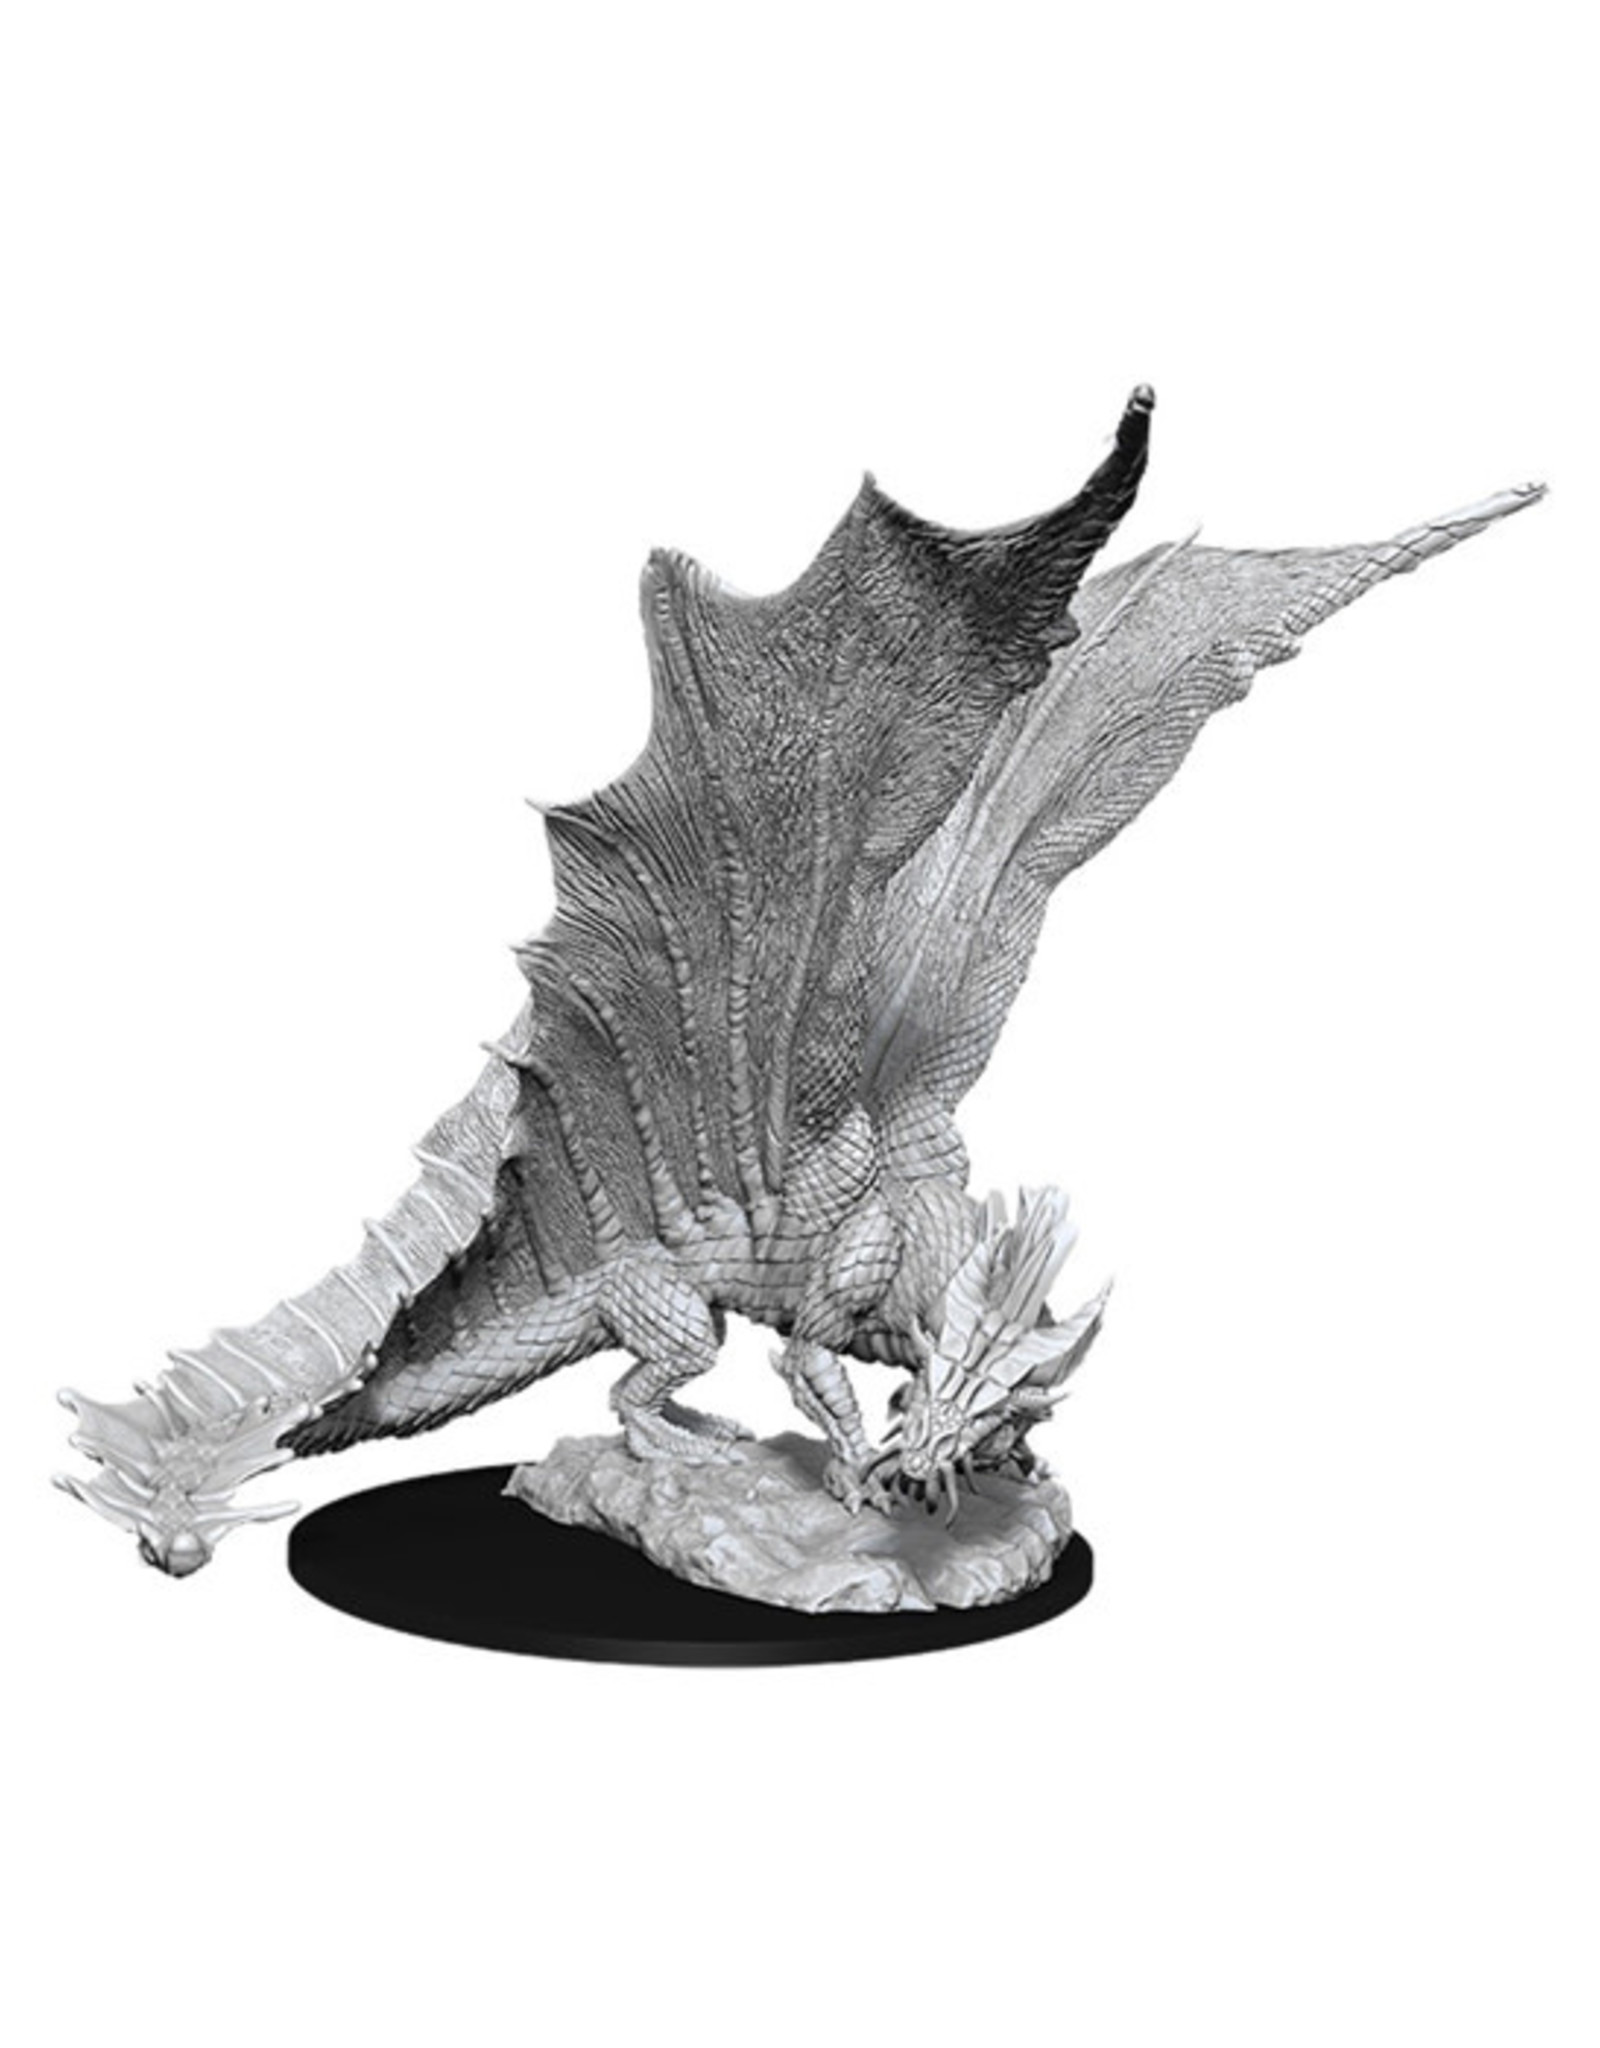 Dungeons & Dragons Dungeons & Dragons: Nolzur's - Young Gold Dragon